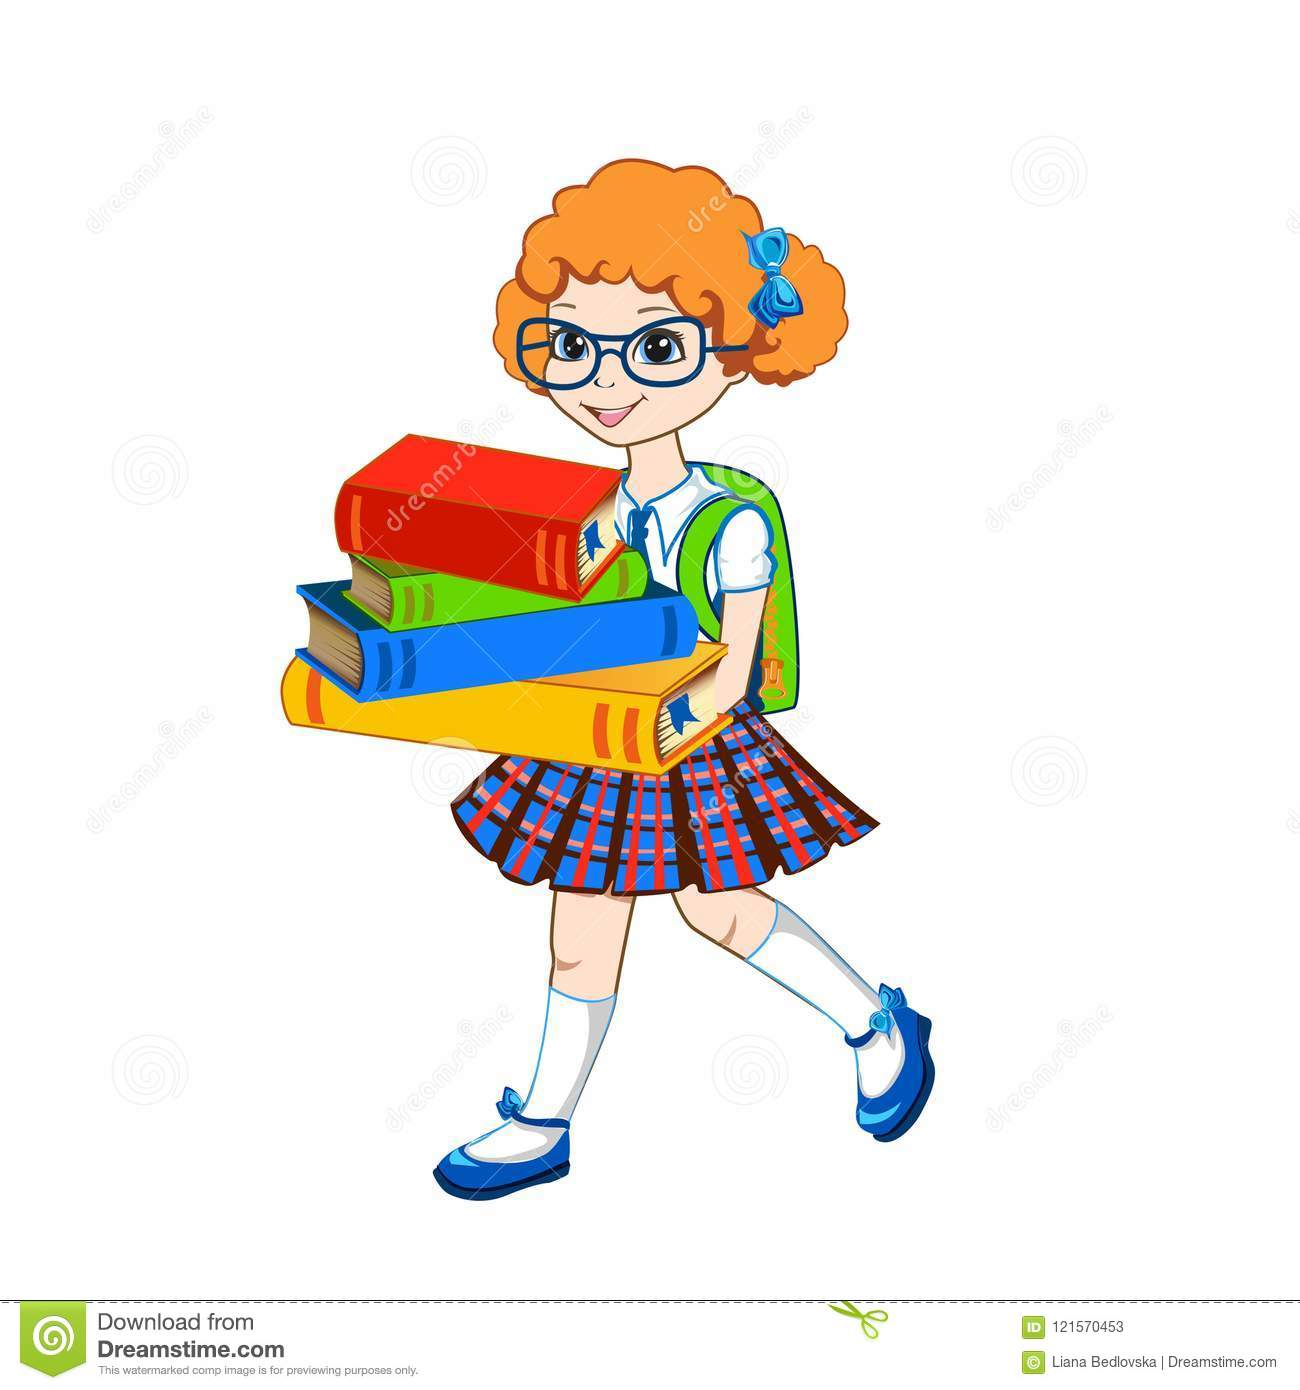 Cute Schoolgirl With Color Books Stock Vector - Illustration of ...